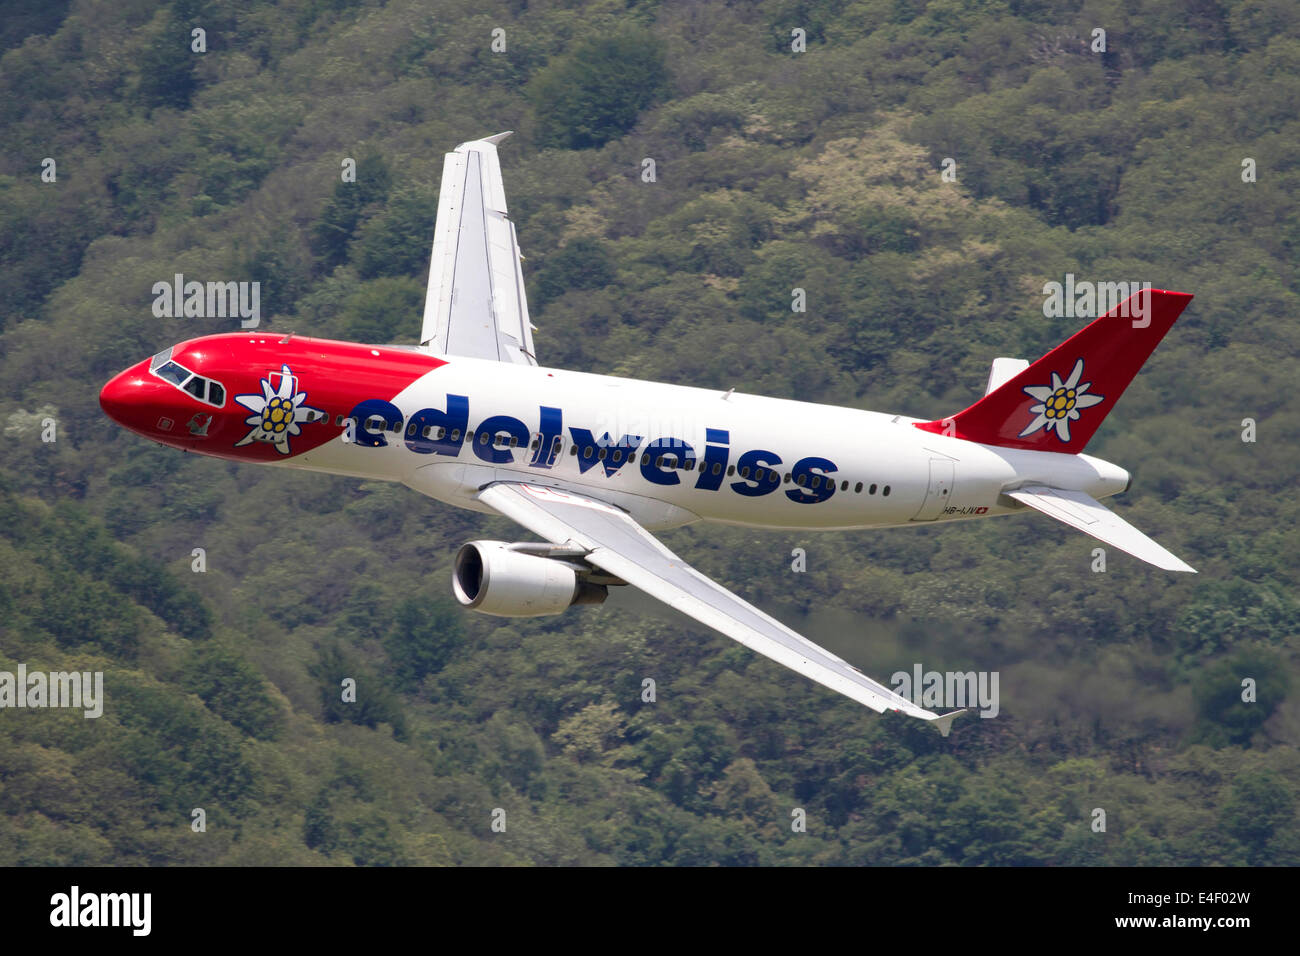 An Airbus A320 of Edelweiss Air in flight over Locarno, Switzerland. - Stock Image